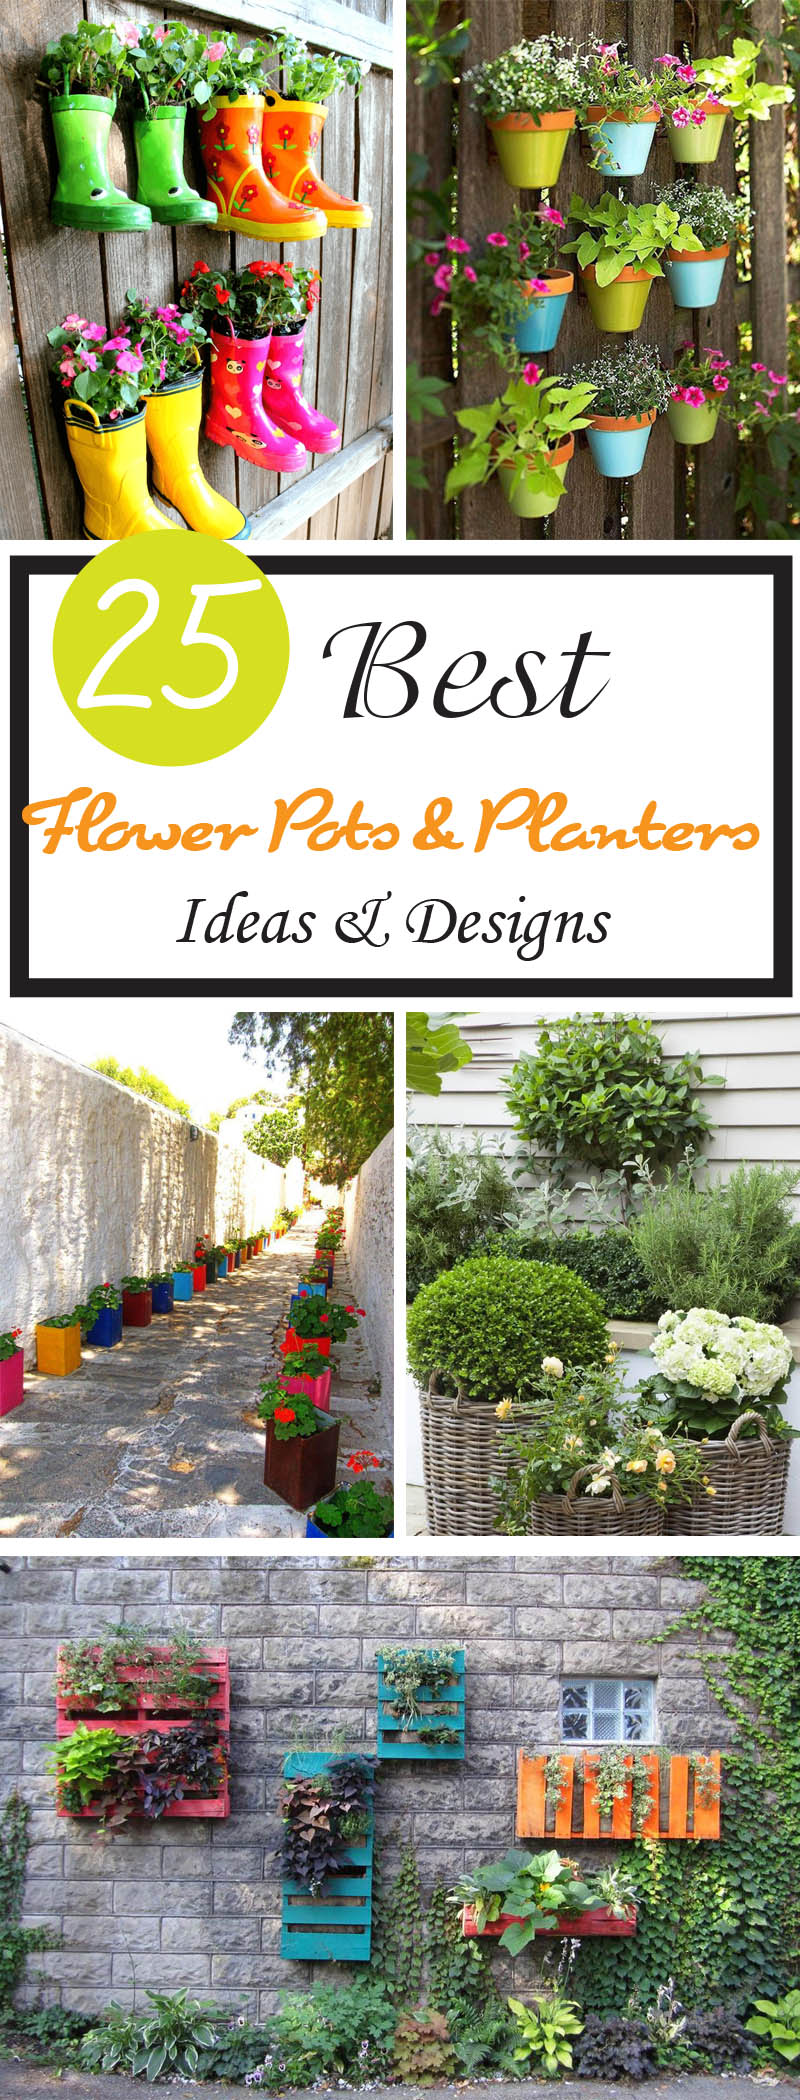 best flower pots and planters ideas